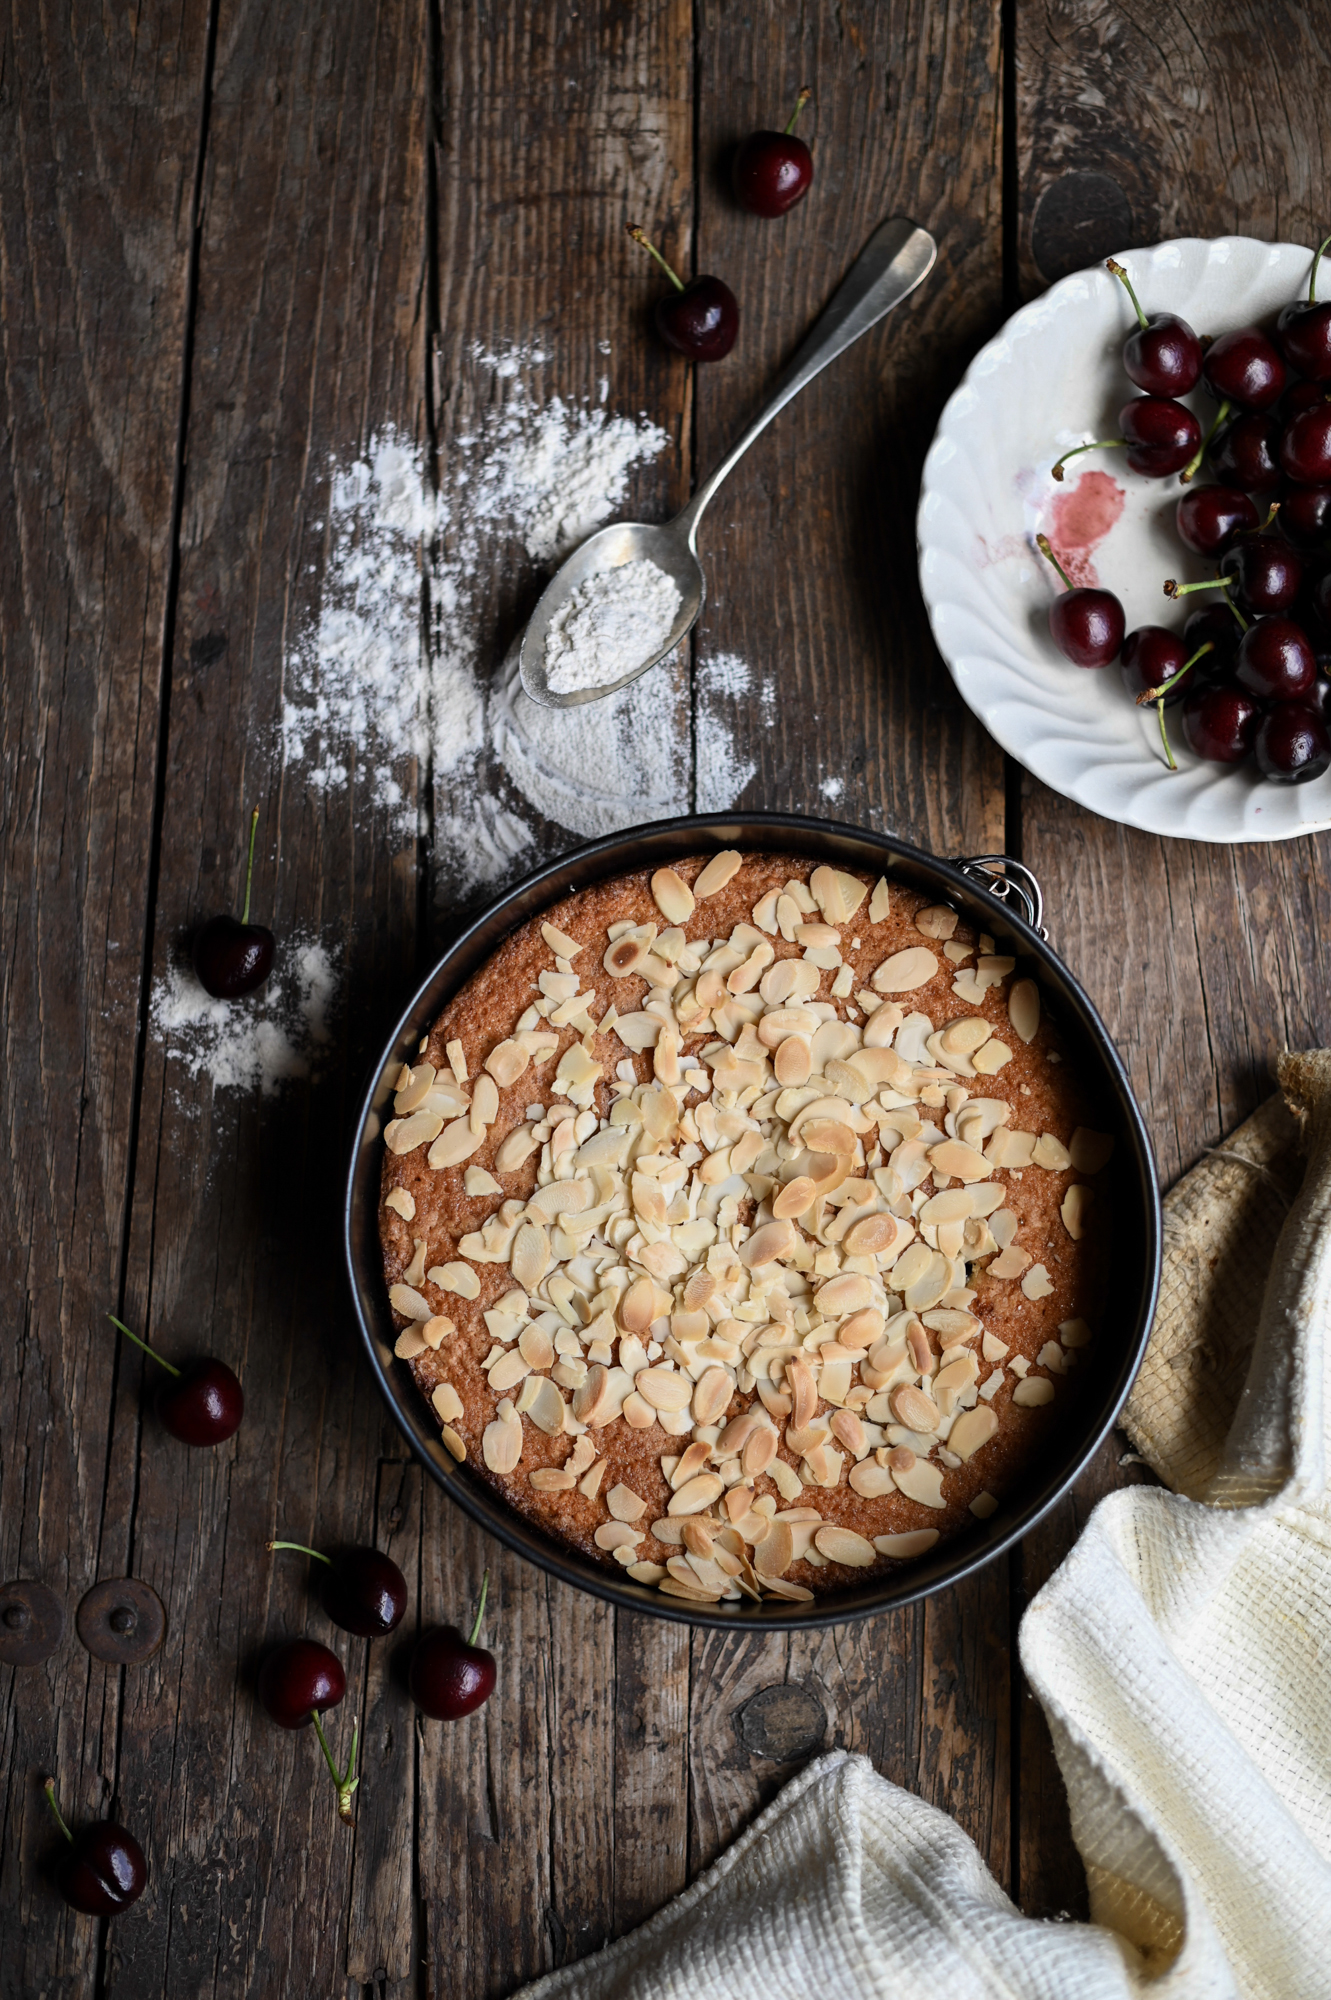 CHERRY AND ALMOND CAKE